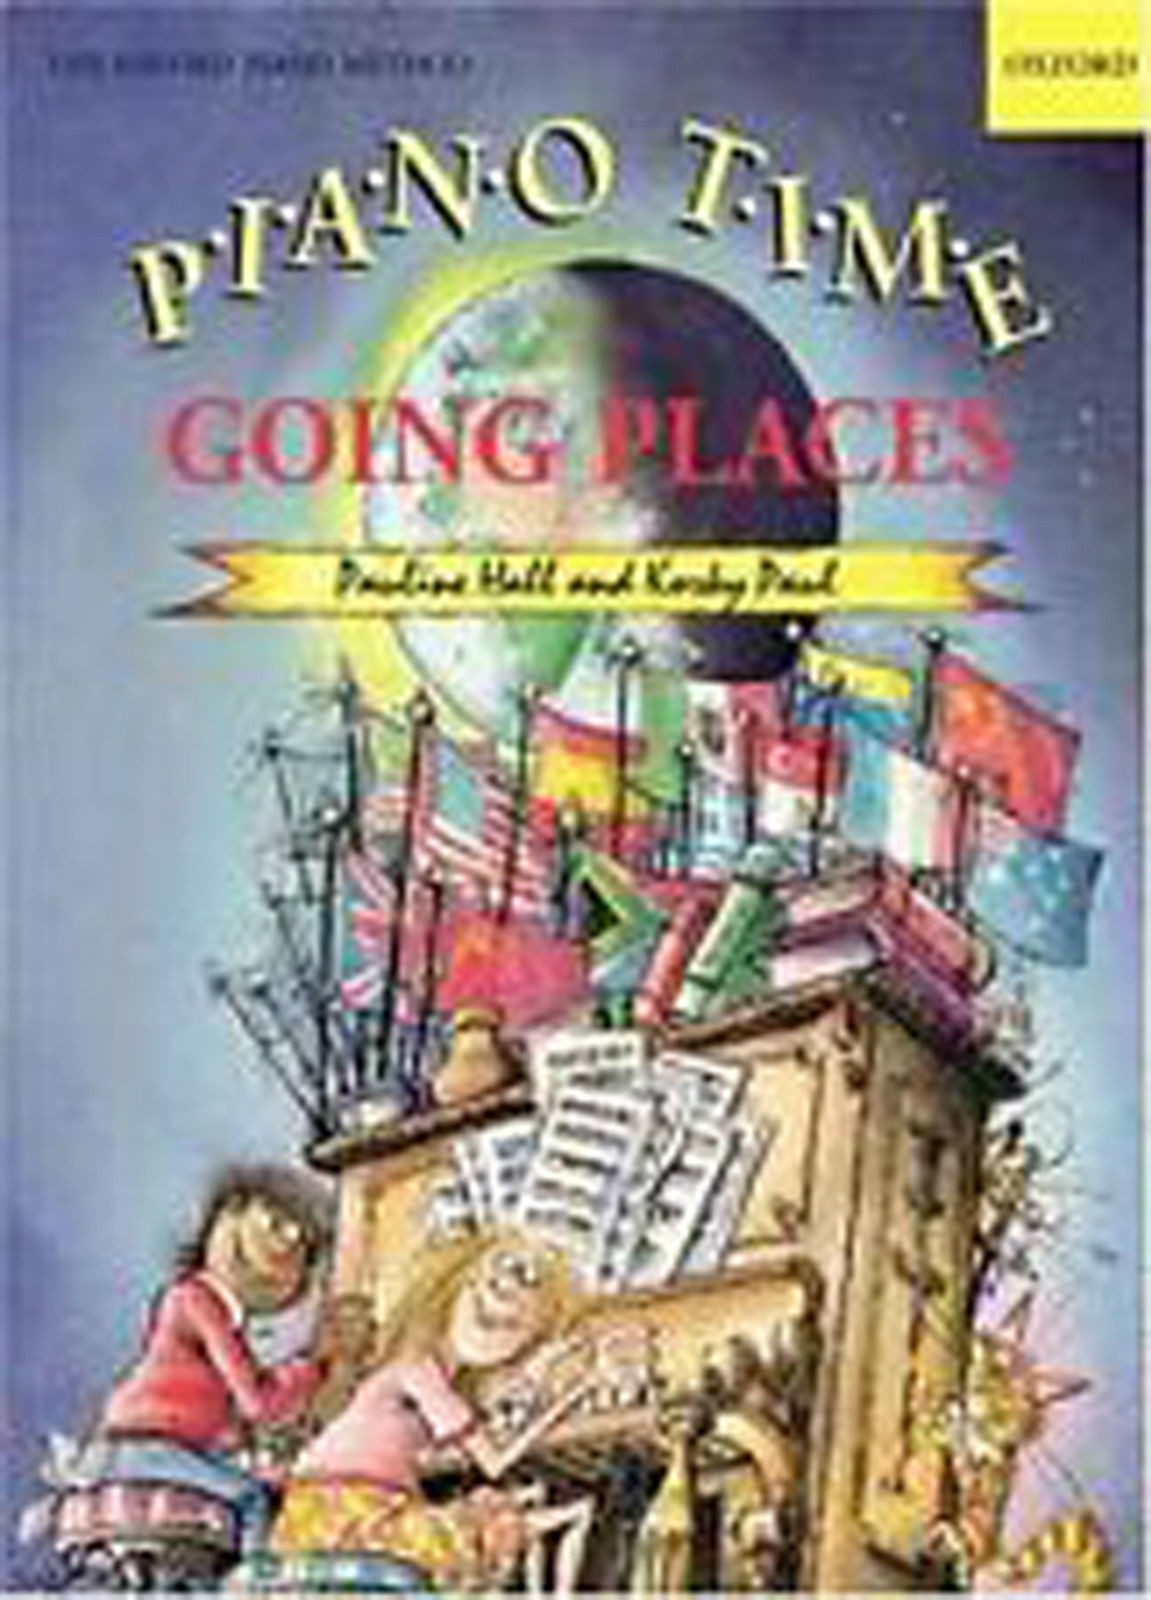 Pauline Hall & Korky Paul Piano Time Going Places Book Oxford Piano Method B45